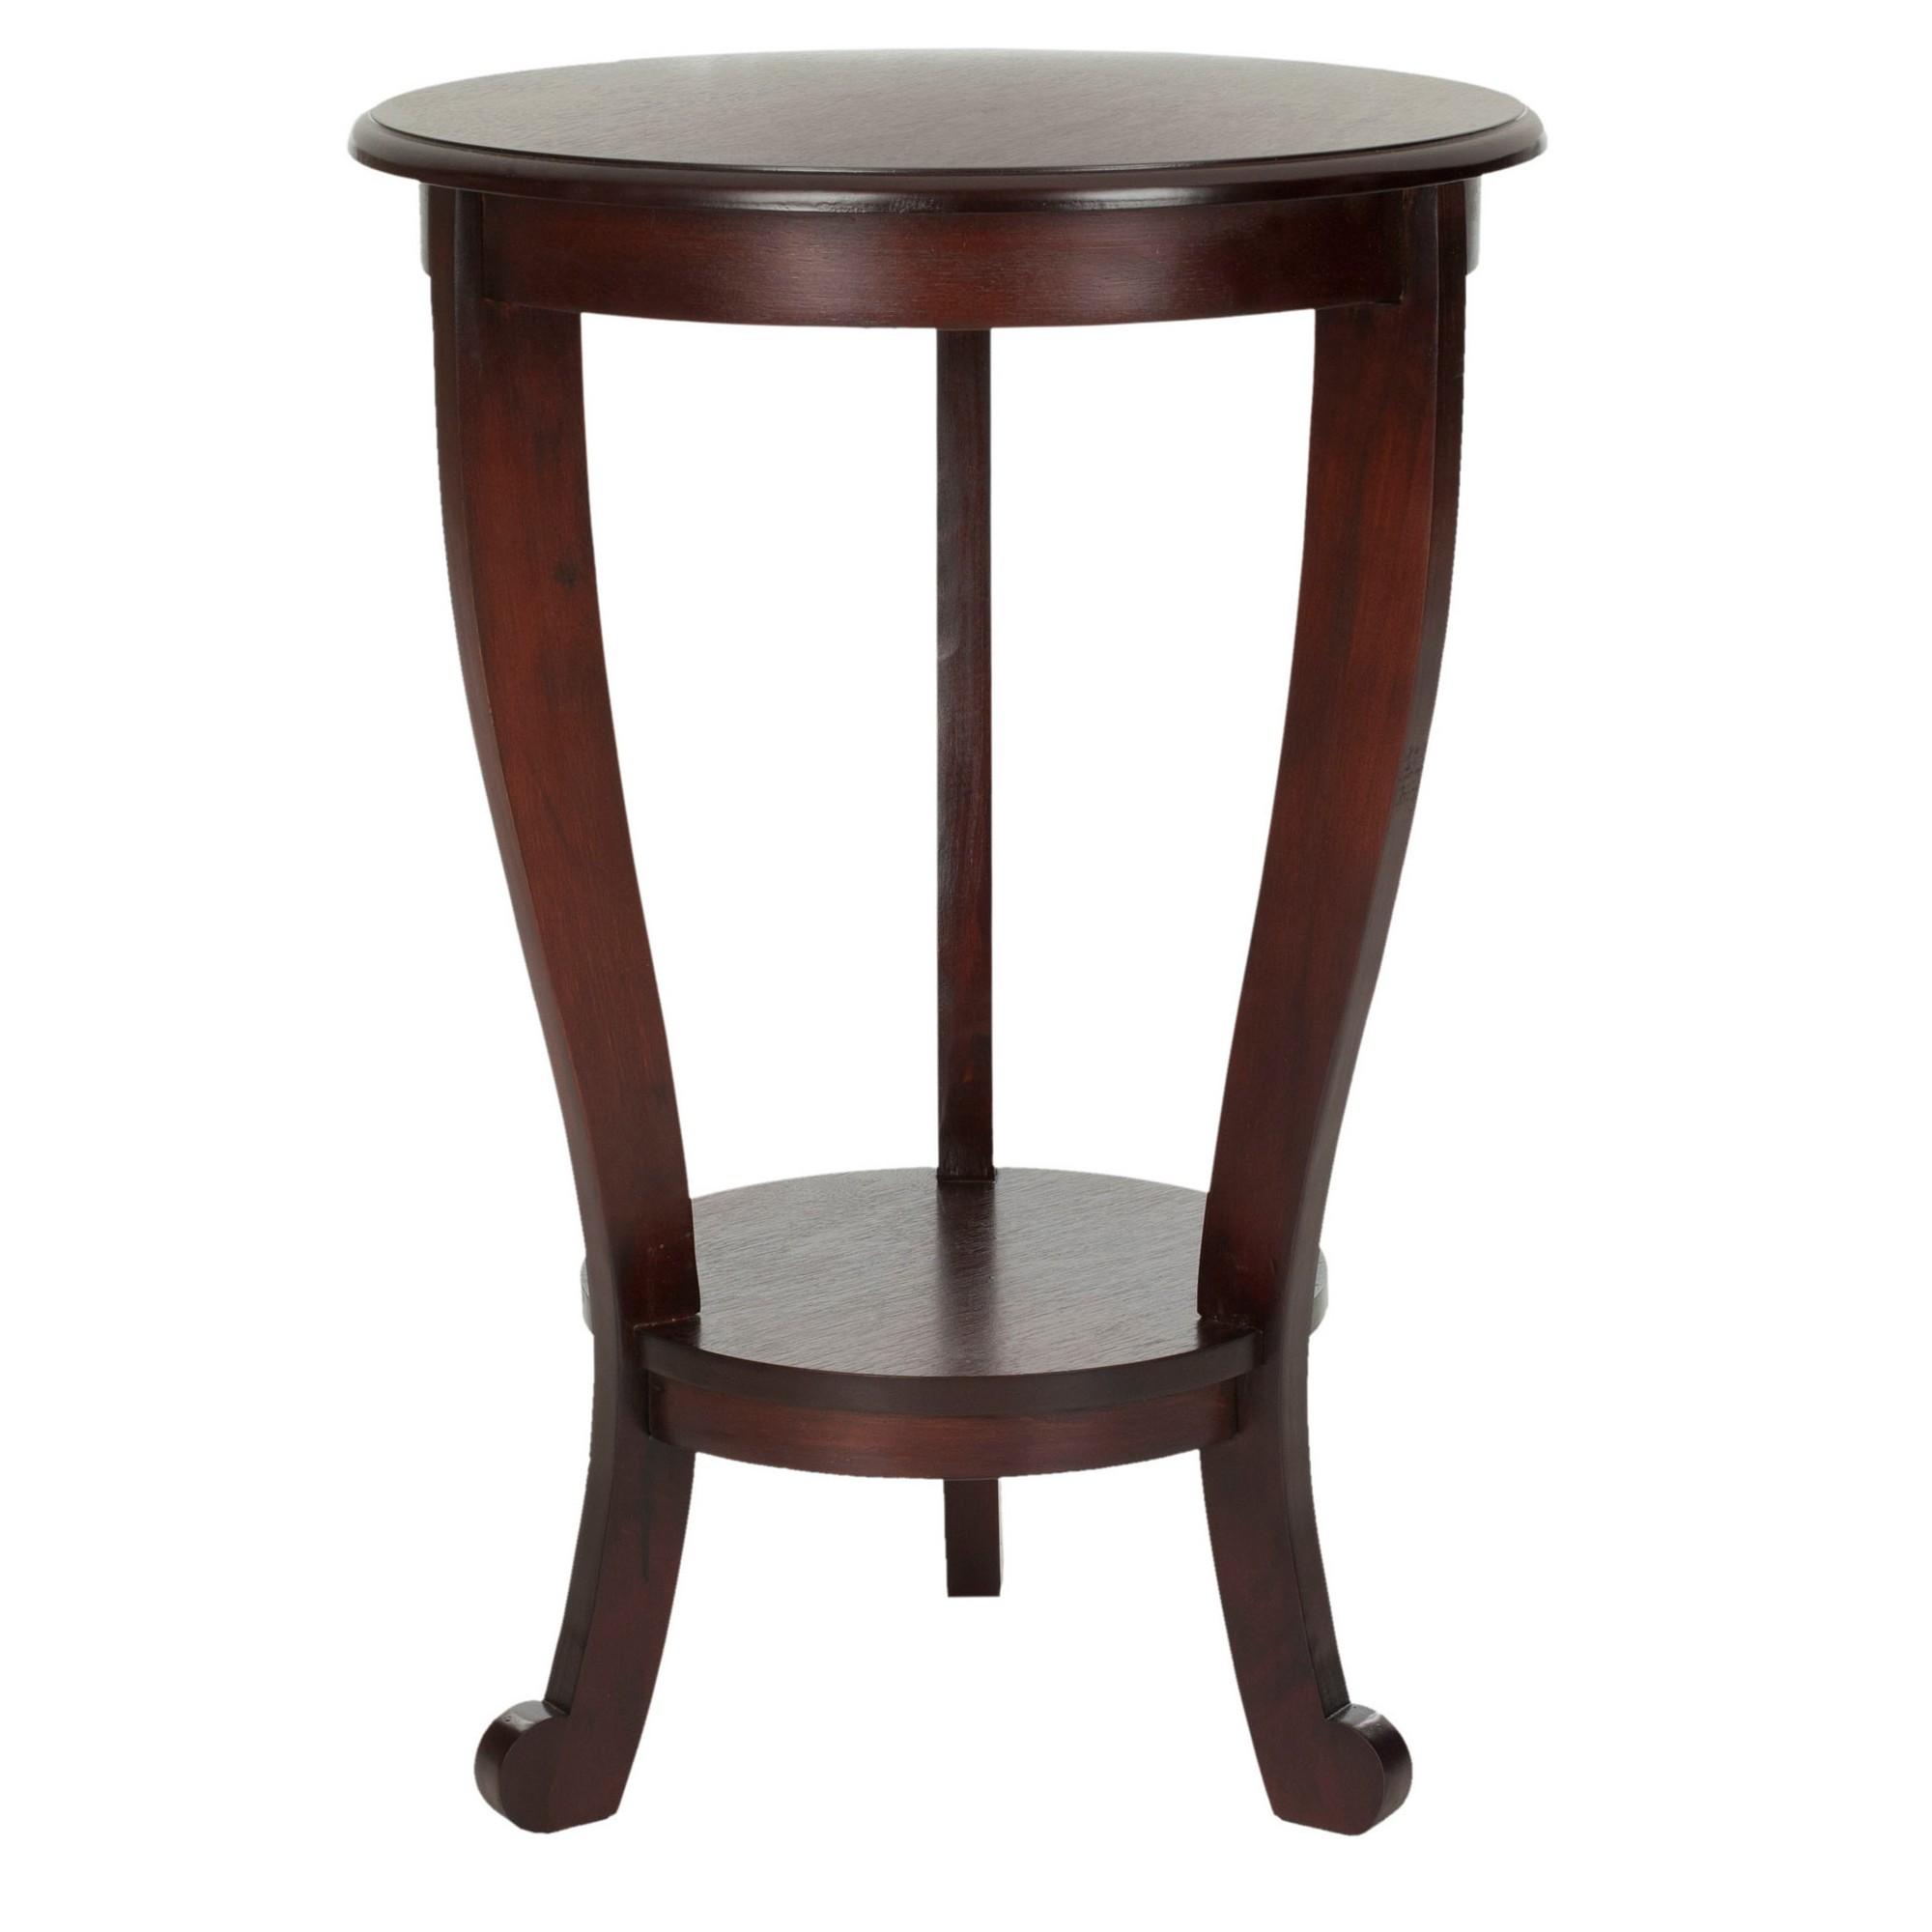 bette accent table cherry red safavieh products half moon glass dining set furniture marble and gold replacement legs drawer vintage oriental lamps round ikea with bench seats